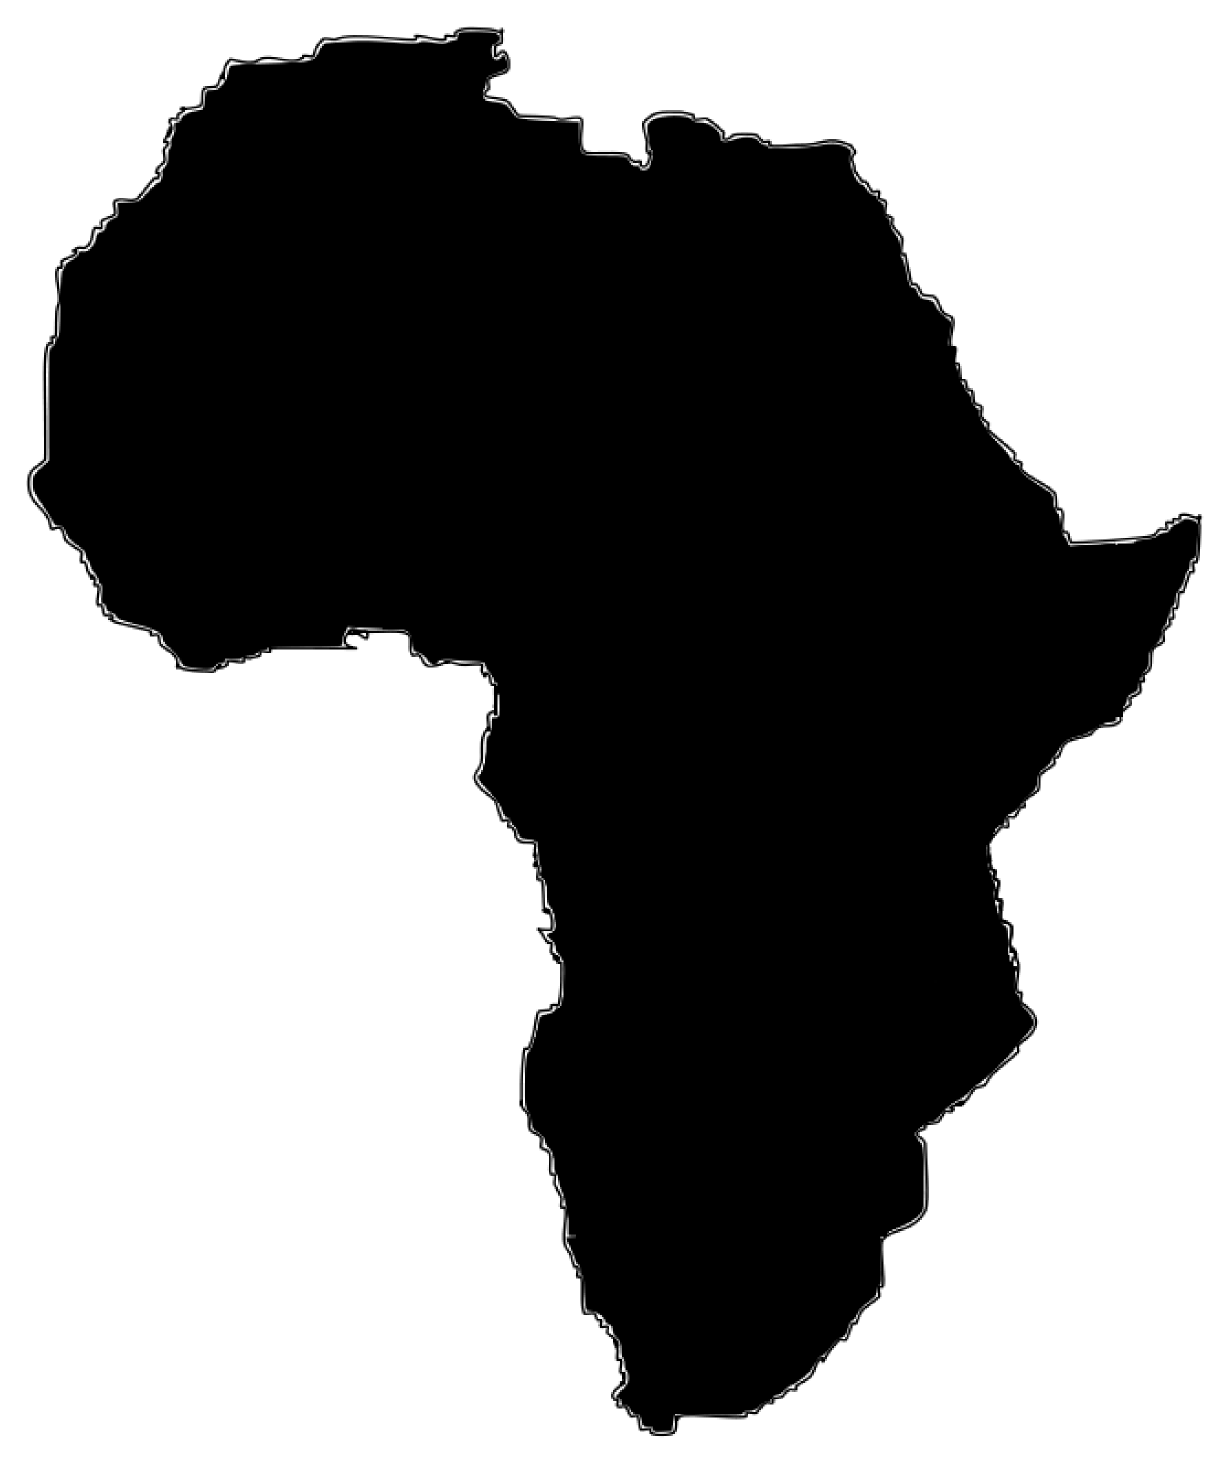 Africa clipart #11, Download drawings